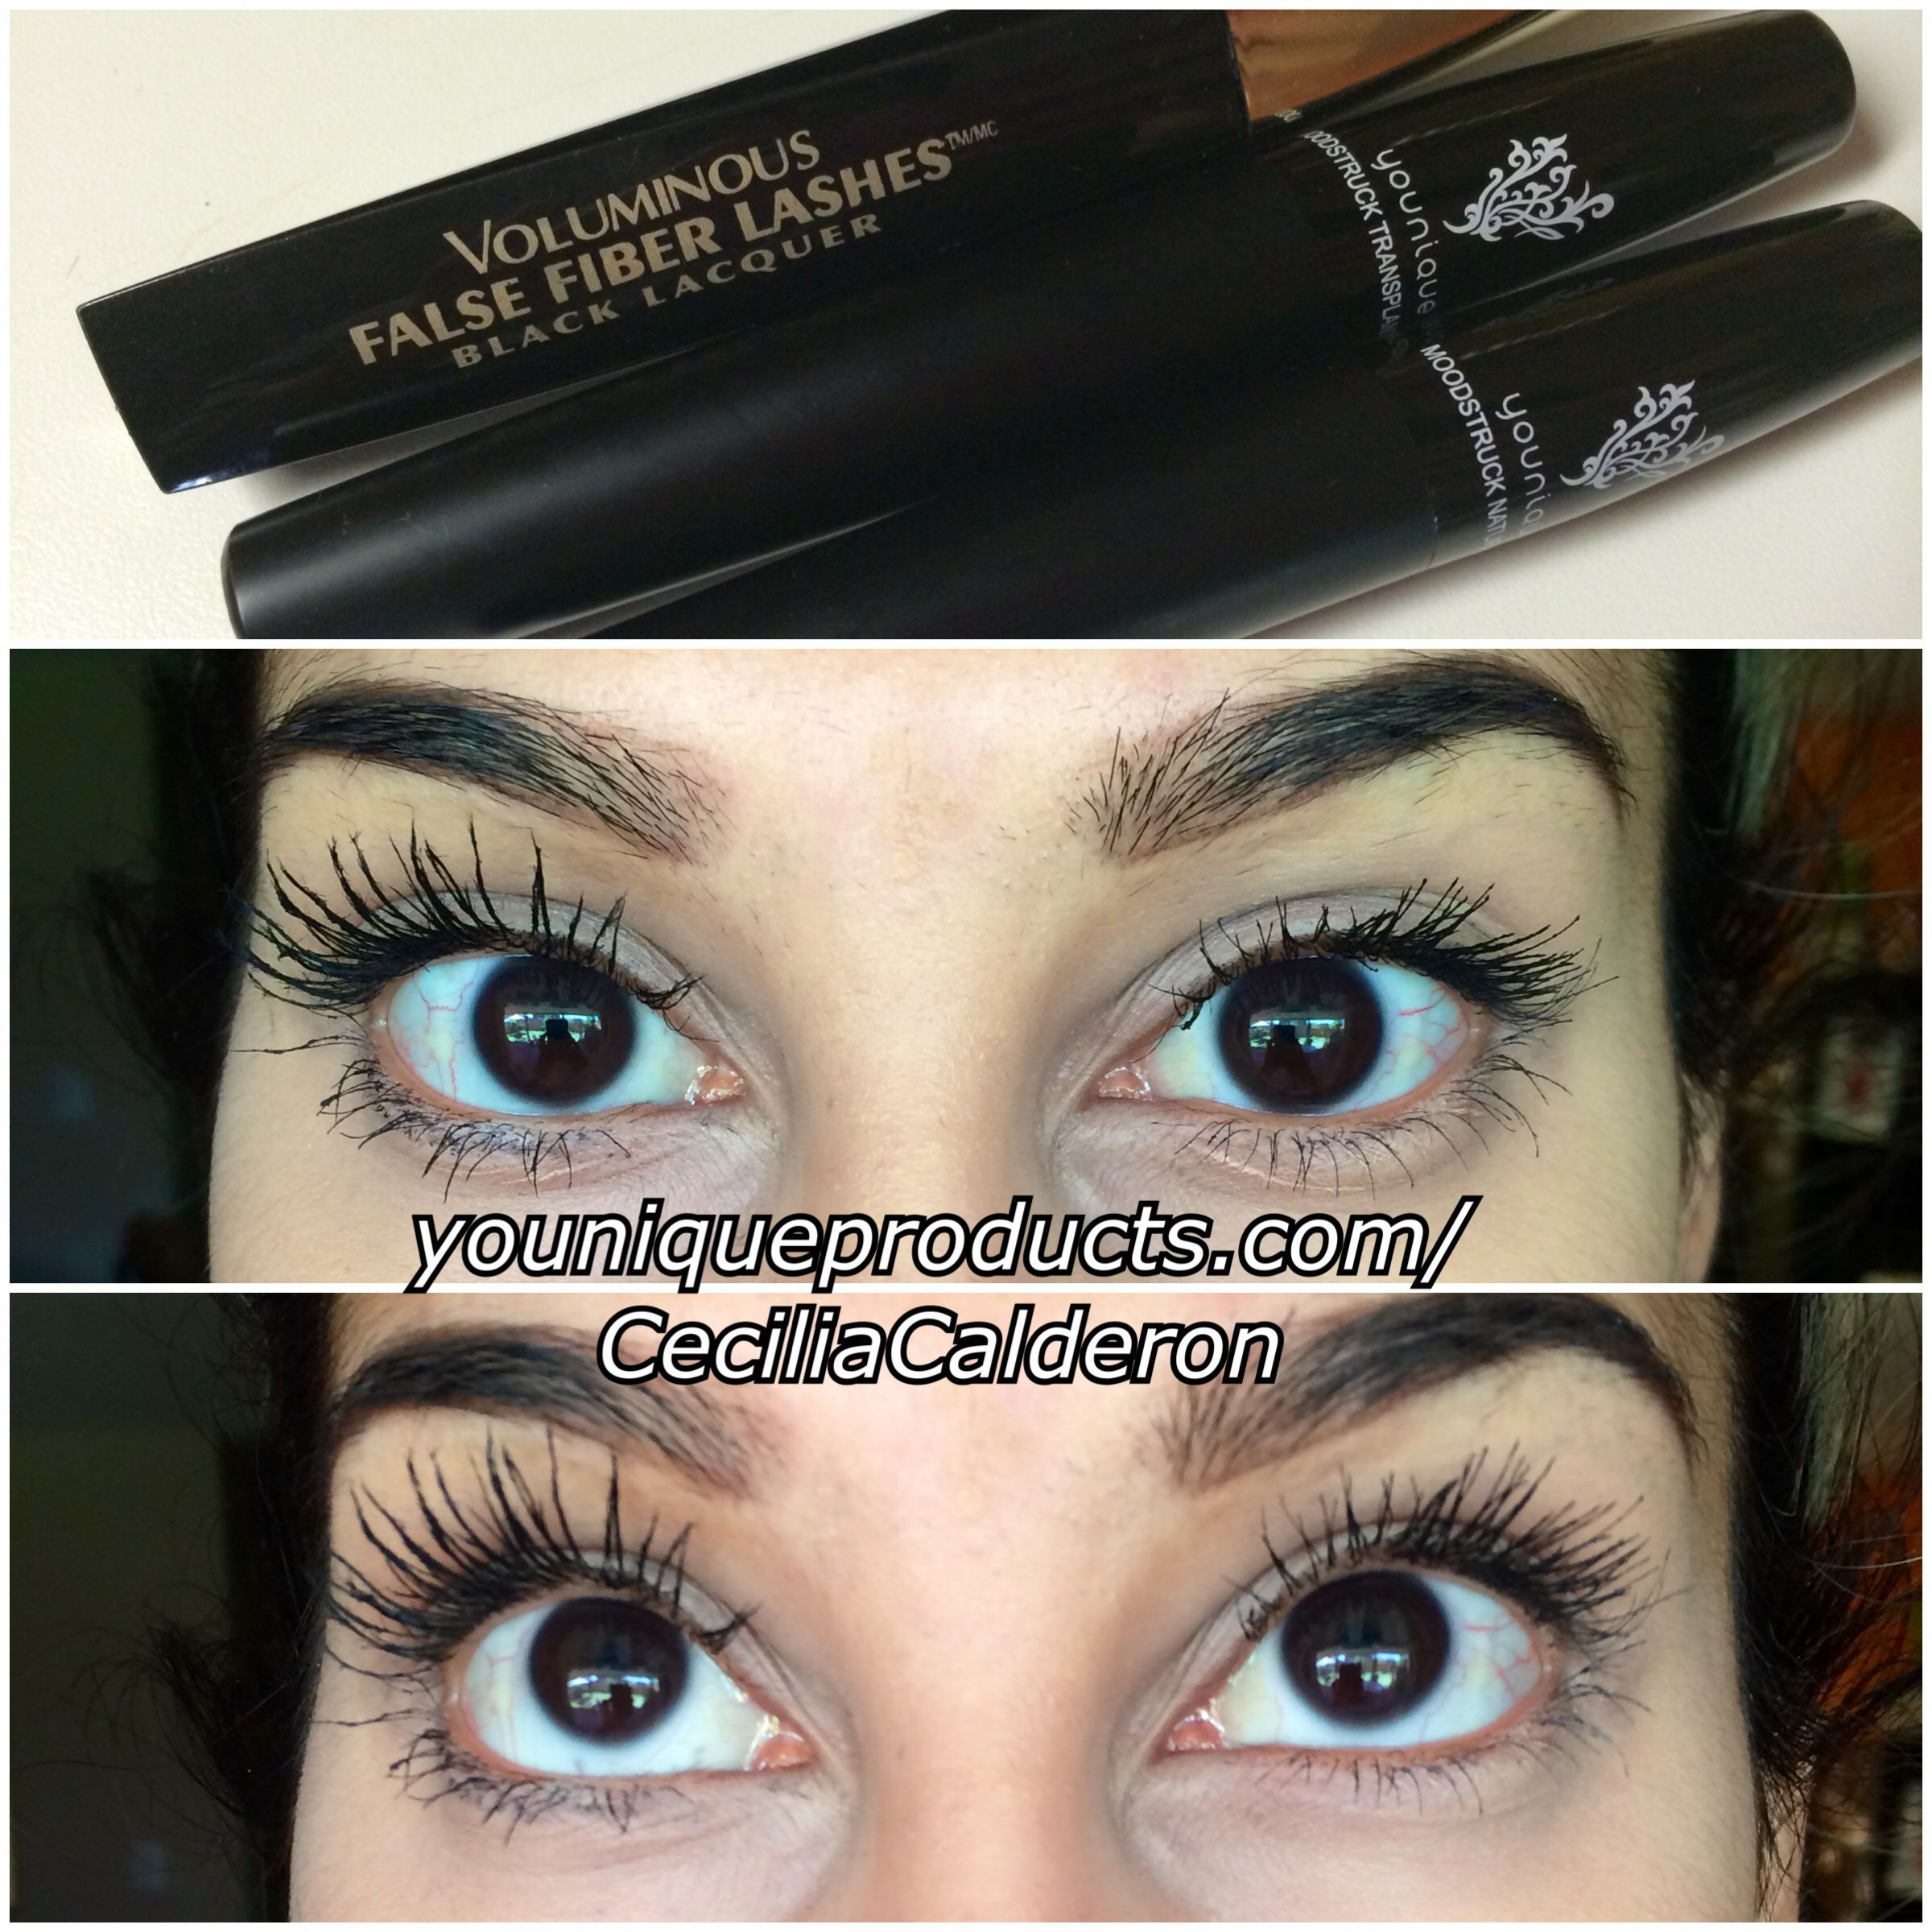 368d679c14f L'OREAL voluminous false fiber mascara VS Younique's moodstruck 3d fiber  mascara I used 2